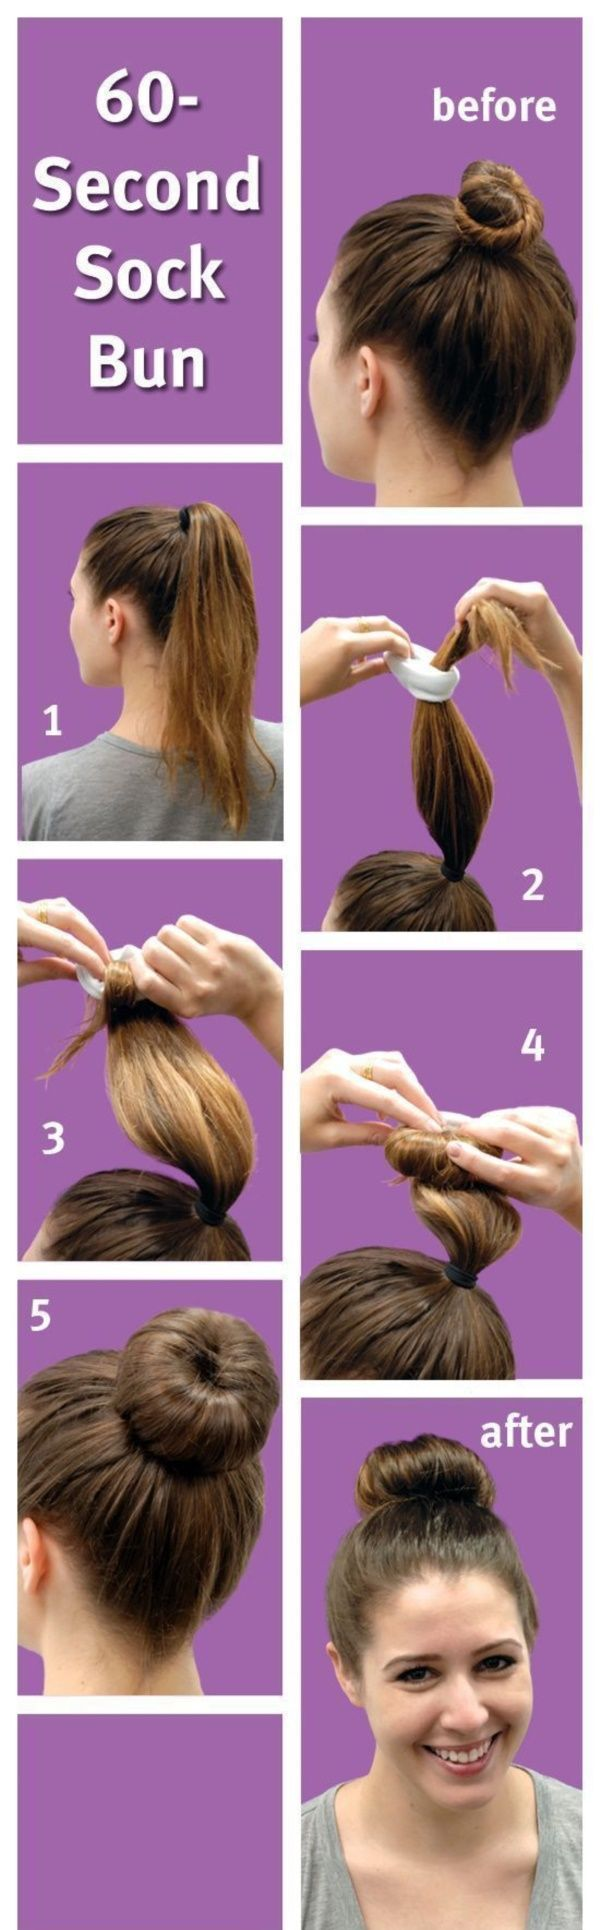 60 Second Sock Bun Hairstyle For Working Women How To Make A Sock Bun Tutorials To Make Sock Bun Sock Bun Hairstyles Hair Bun Tutorial Thick Hair Styles